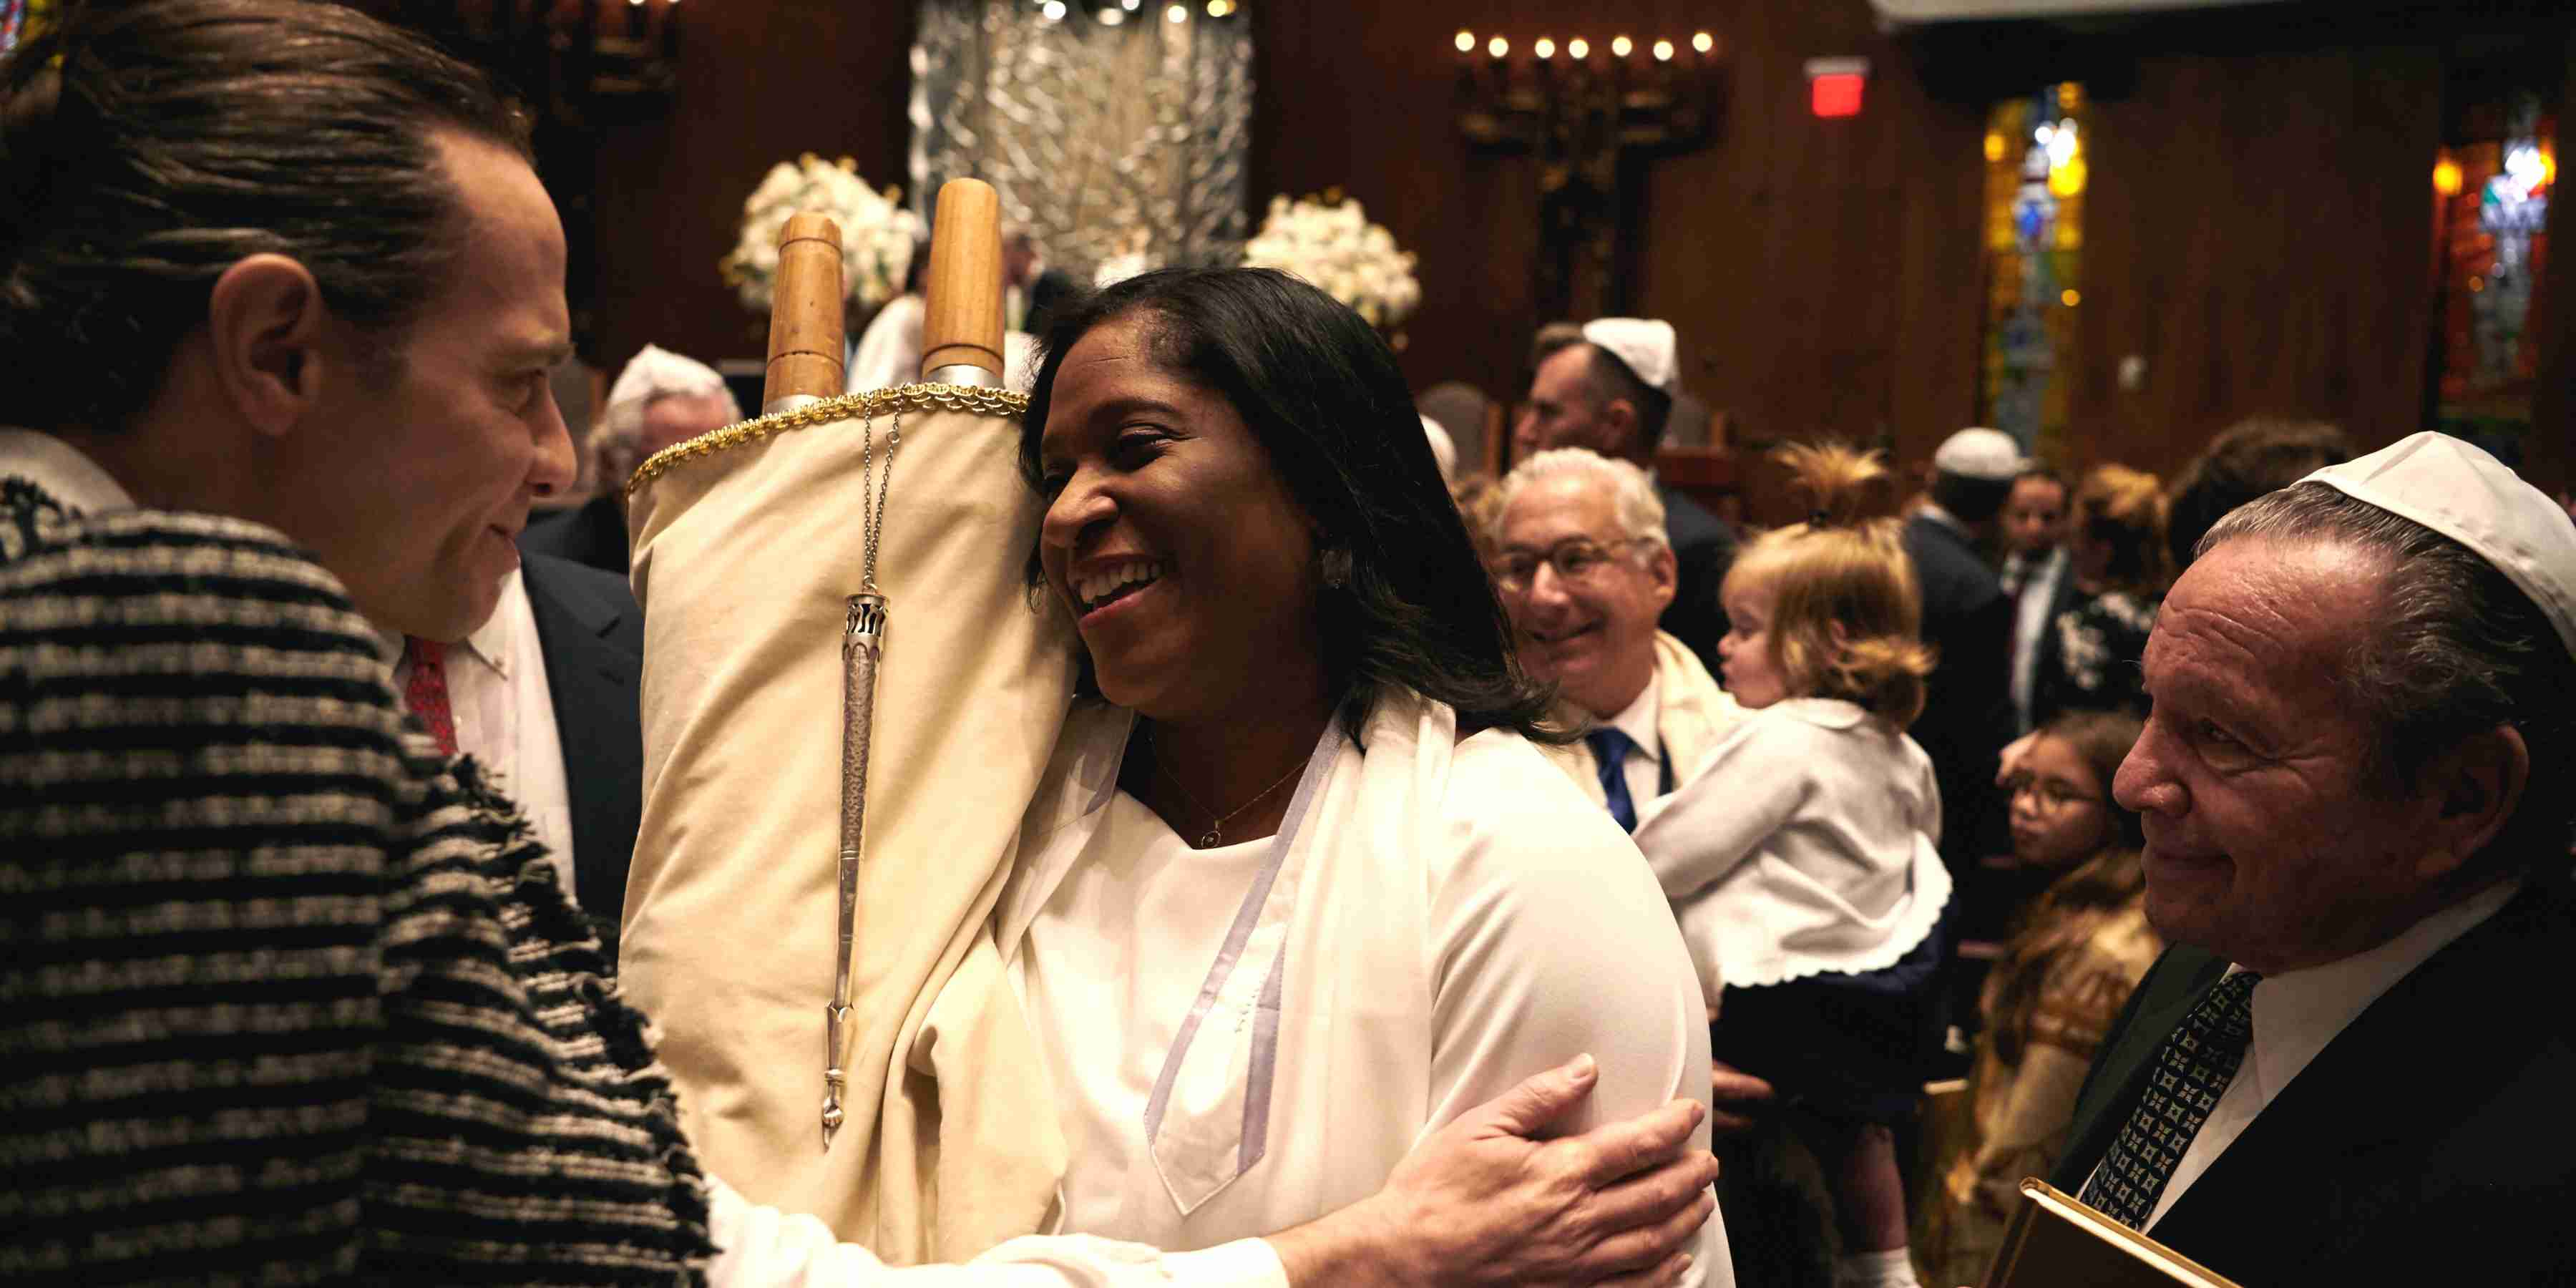 Woman carrying a Torah through the sanctuary